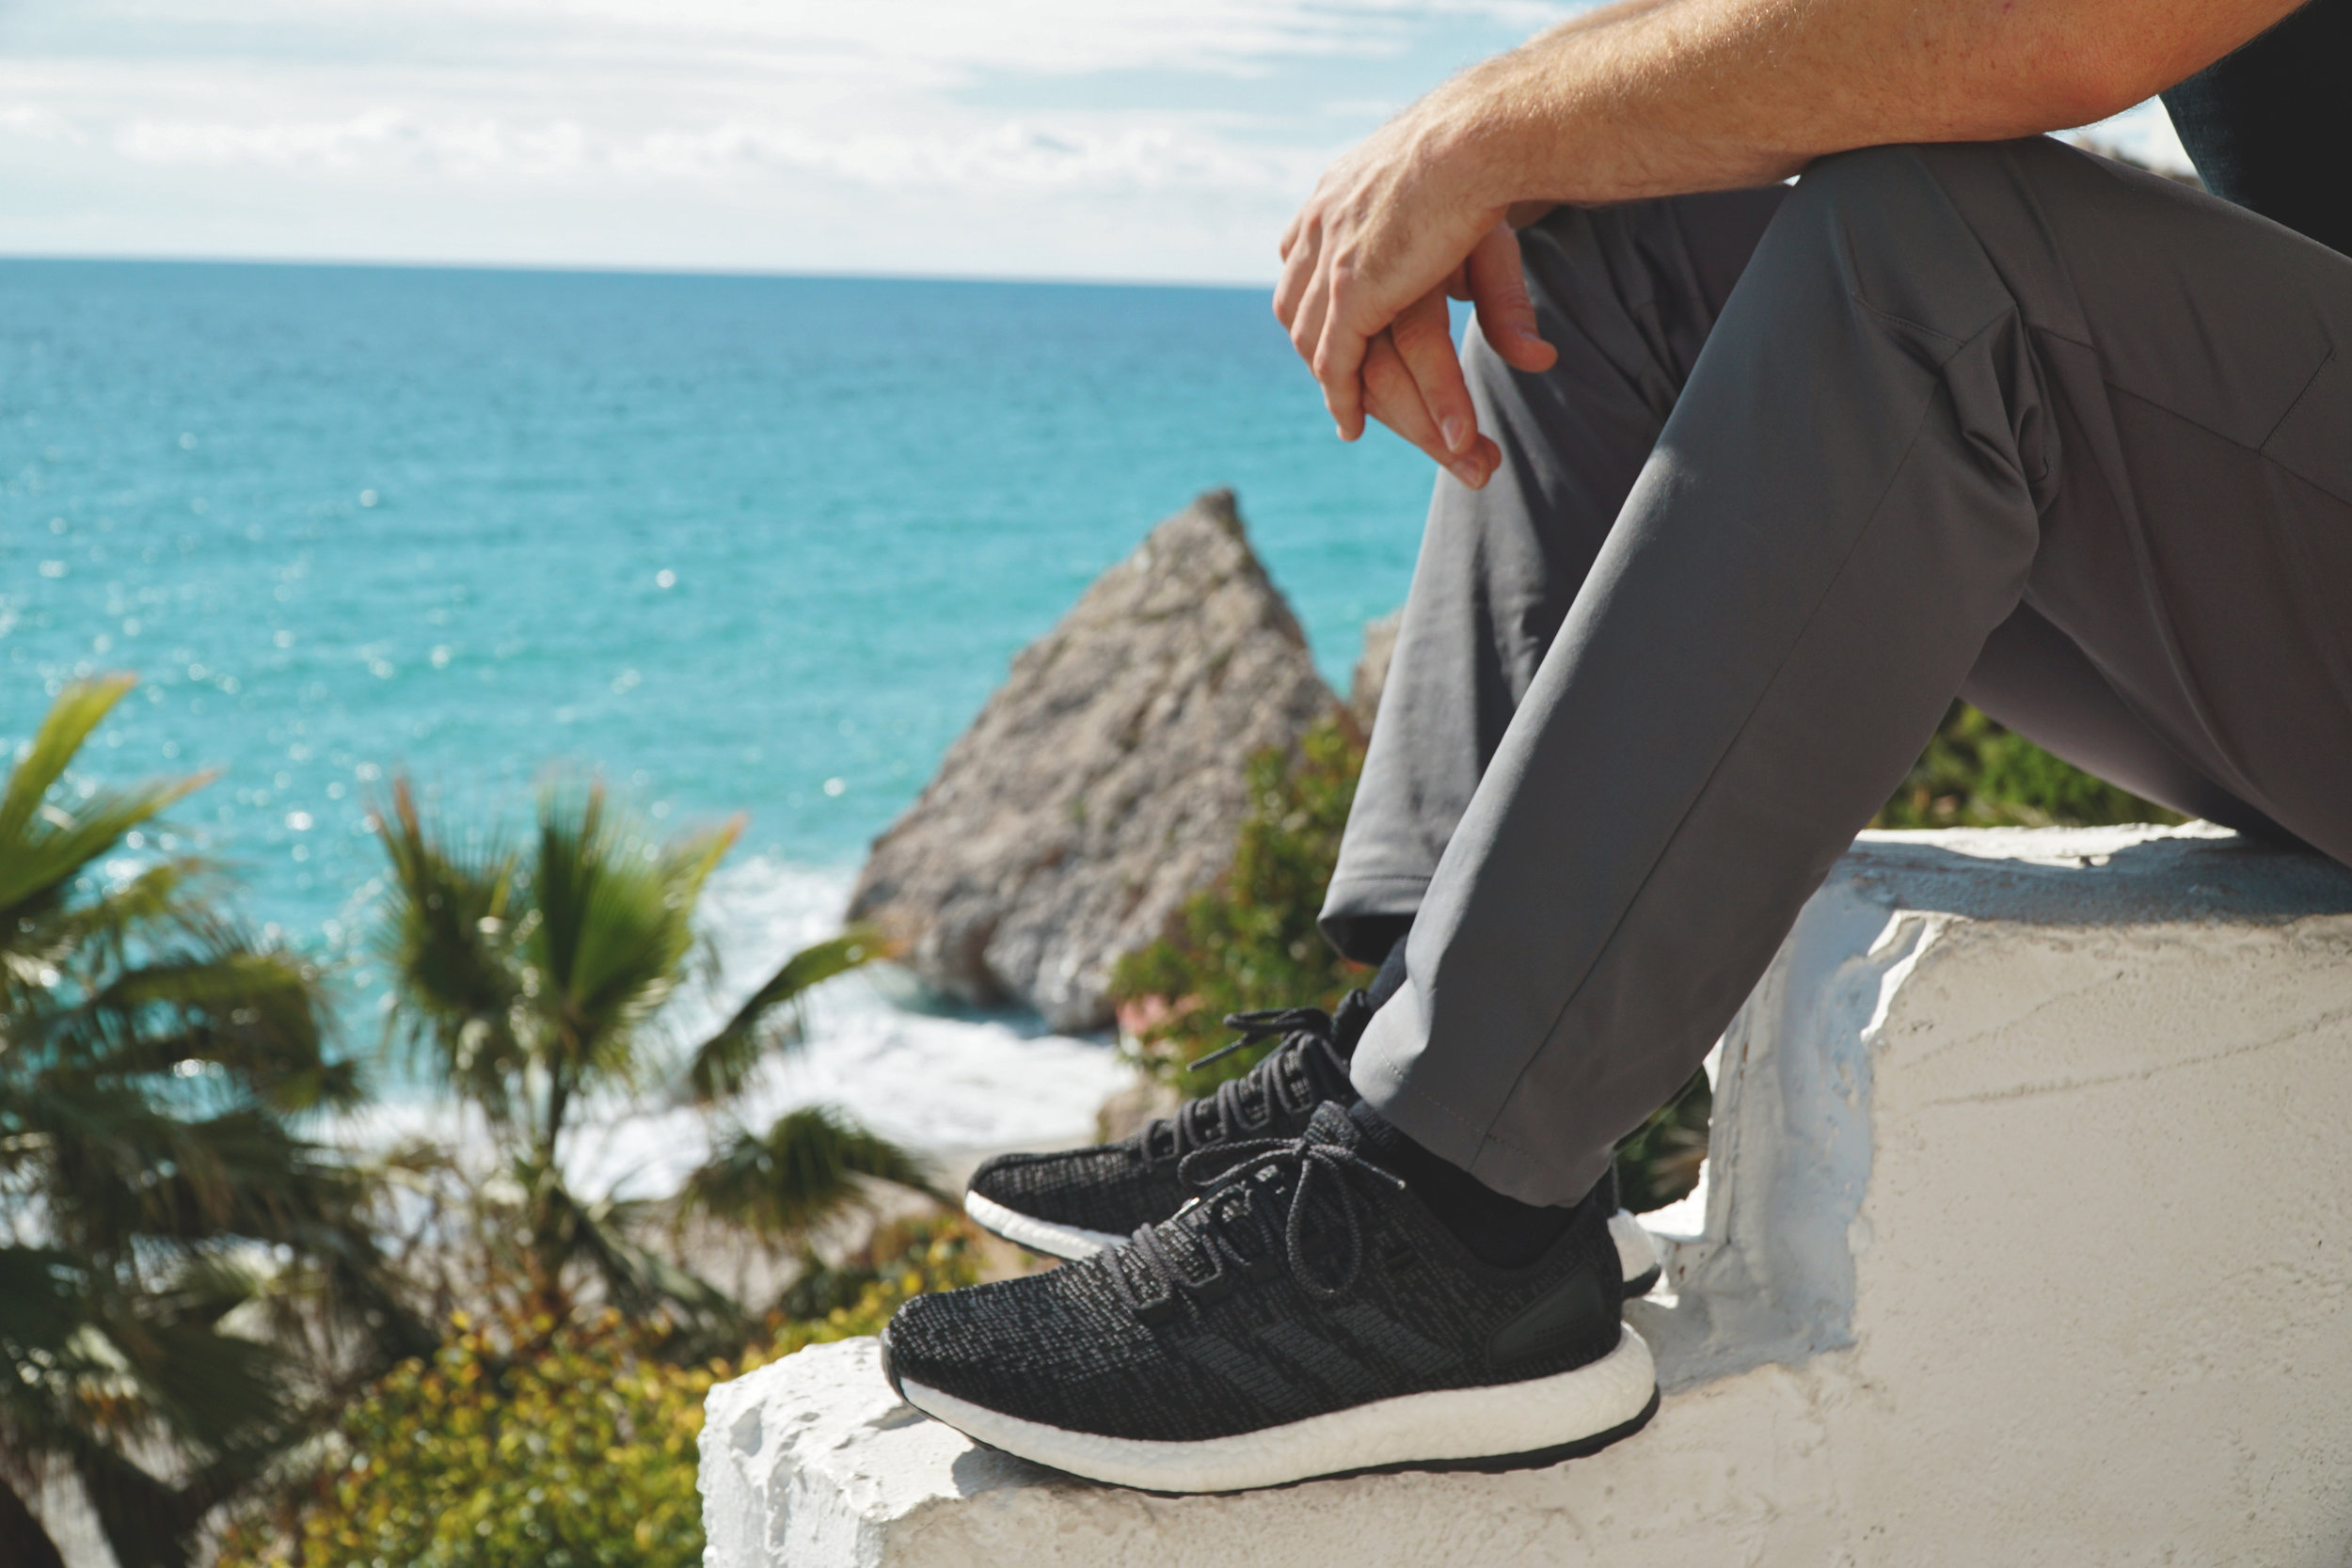 Adidas Pureboost in Spain Review